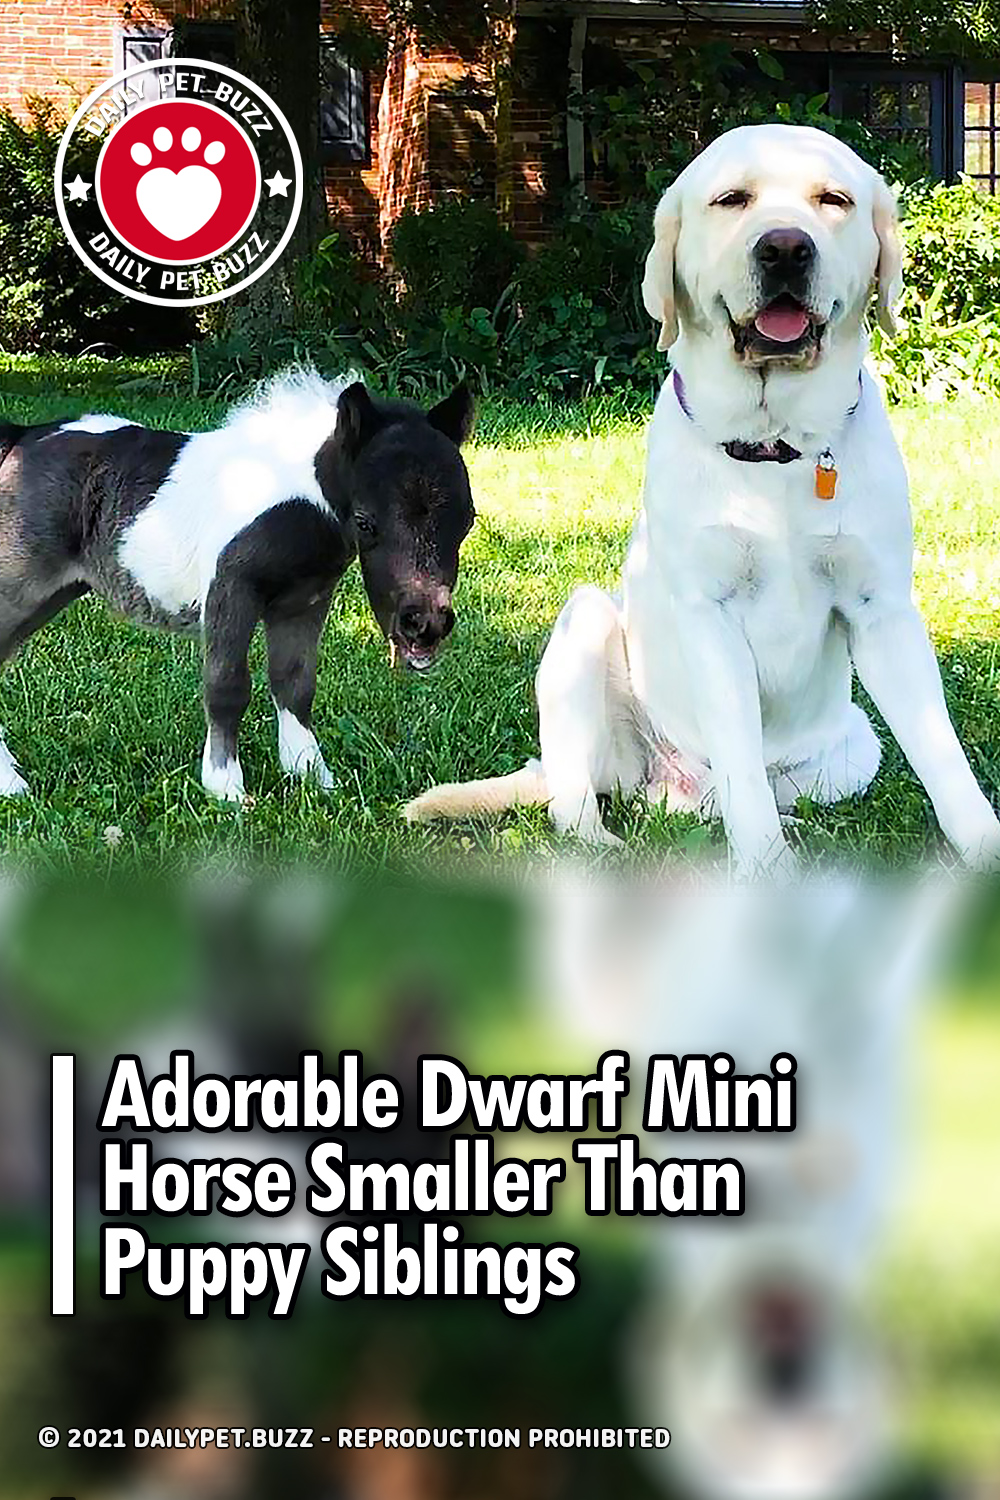 Adorable Dwarf Mini Horse Smaller Than Puppy Siblings